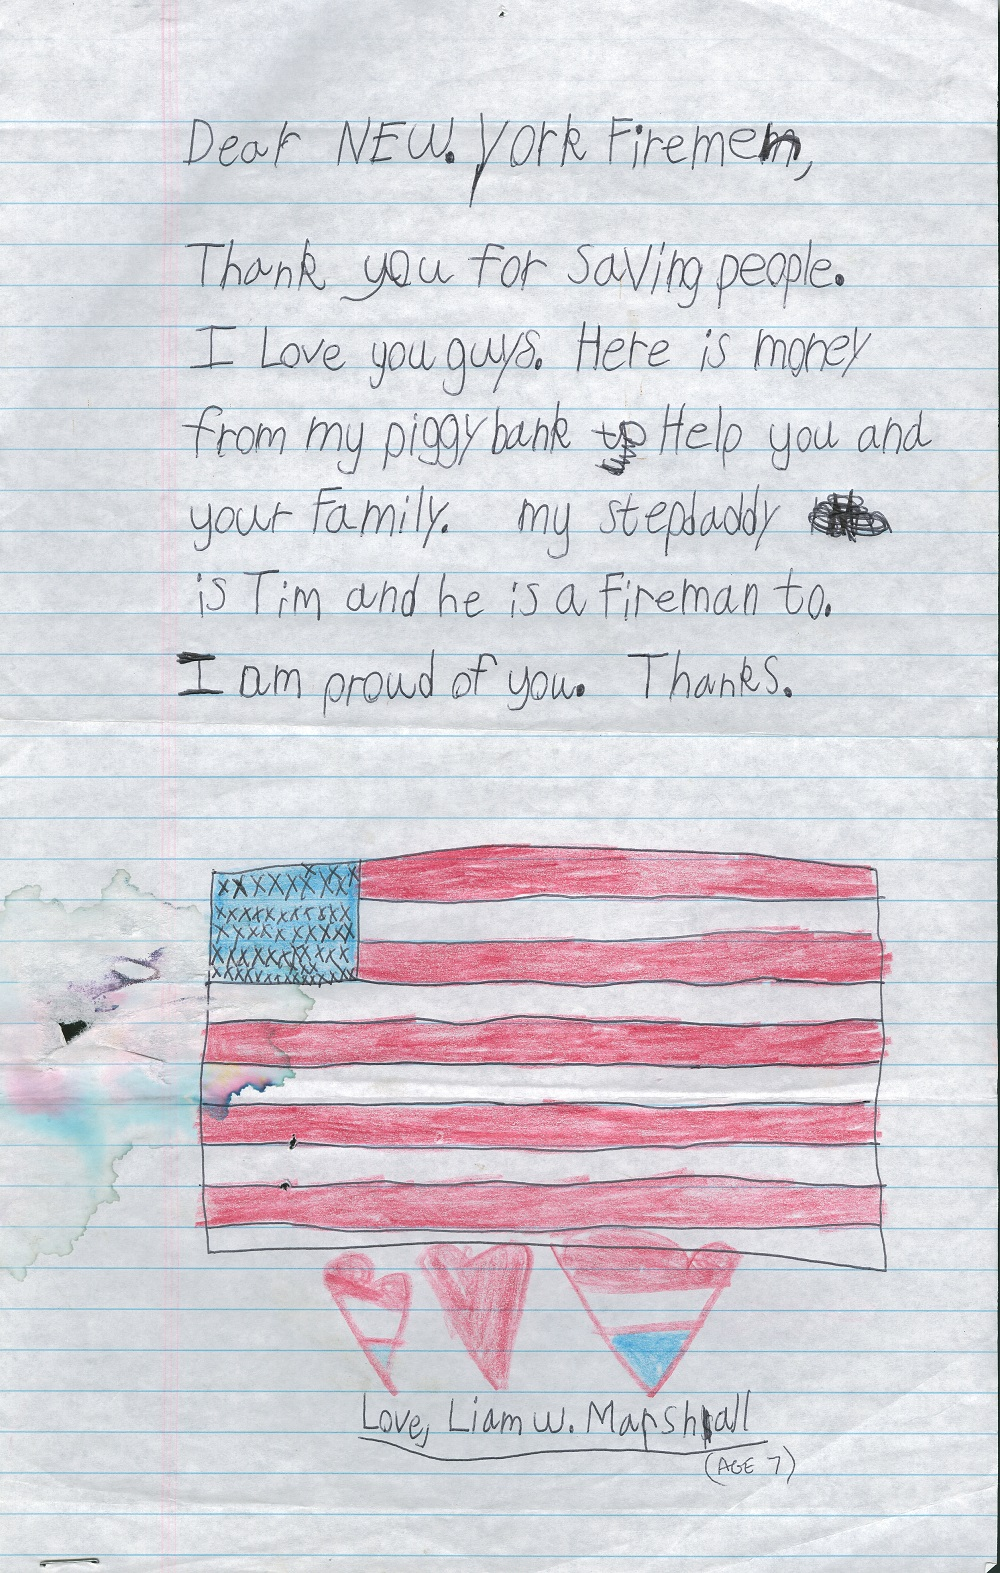 "A child's letter written to New York firefighters includes a message and a drawing of the American flag. Under the flag are three hearts colored red, white, and blue. The message above the flag reads: ""Thank you for saving people. I love you guys. Here is money from my piggy bank to help you and your family. My stepdaddy is Tim and he is a fireman too. I am proud of you. Thanks."""